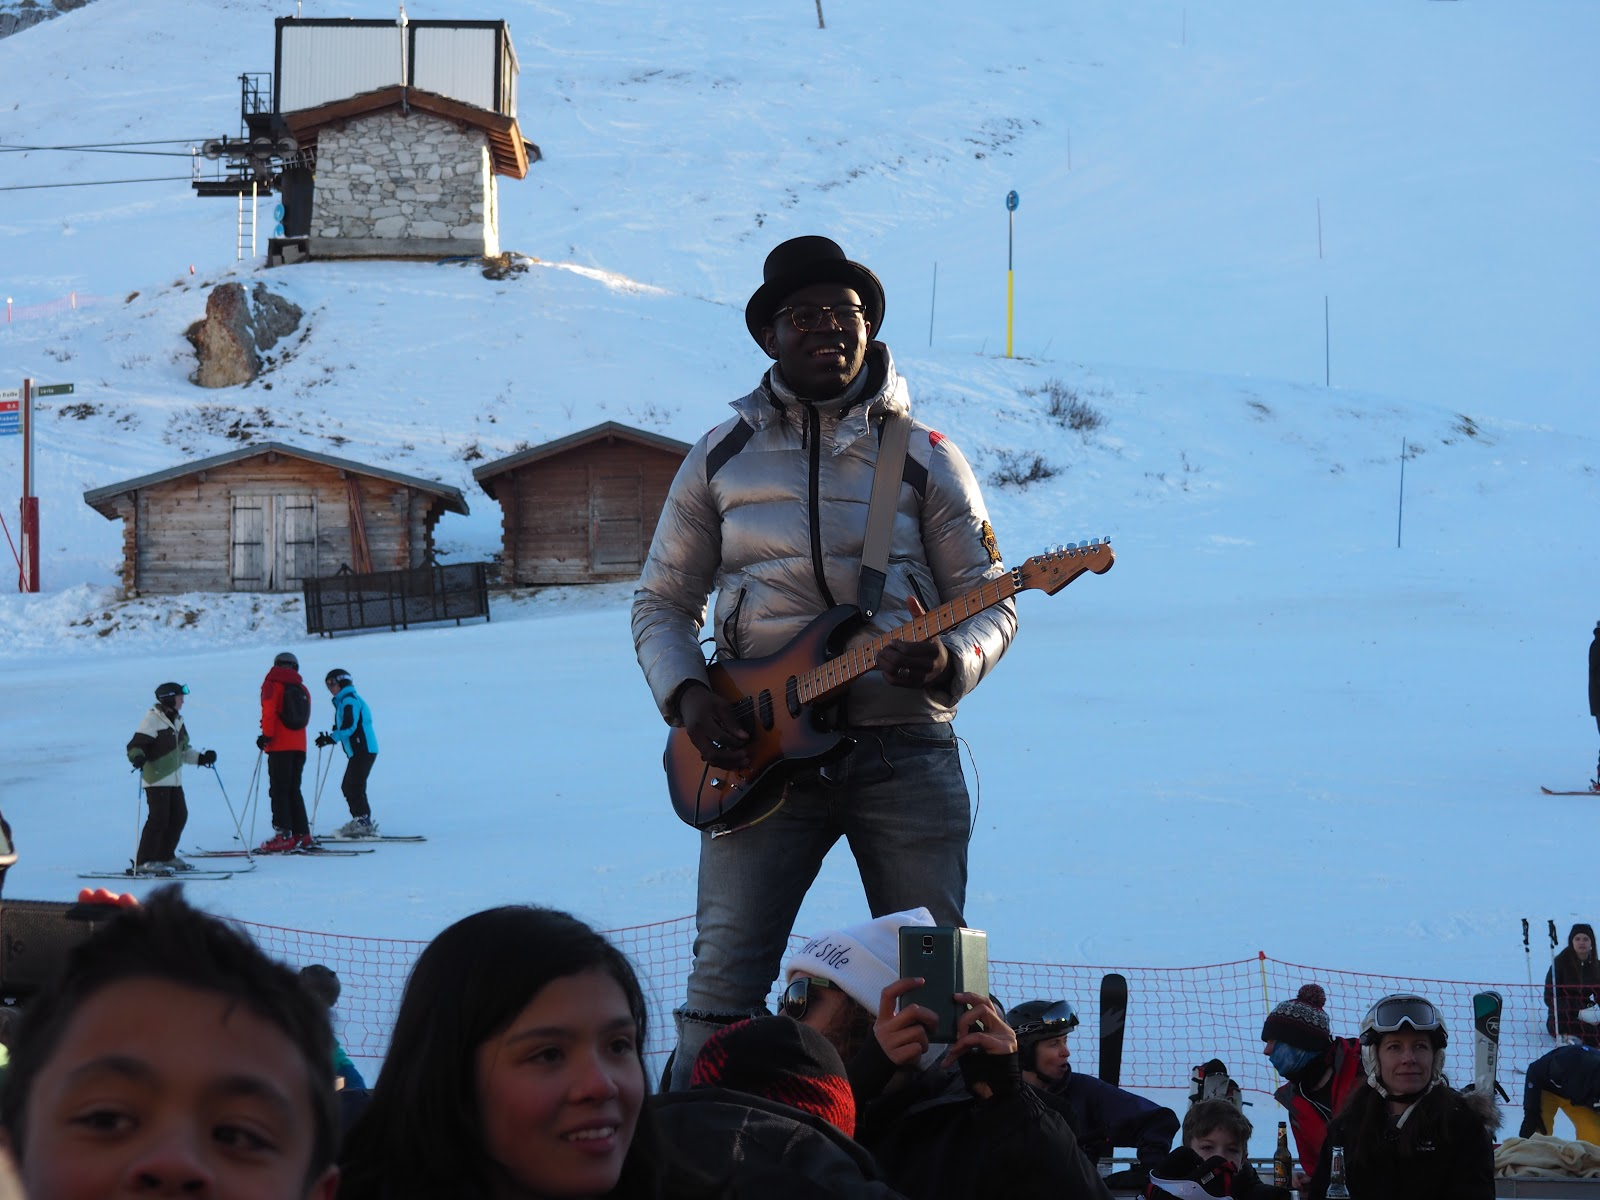 Guitar Player at La Folie Douce, Val d'Isere, France